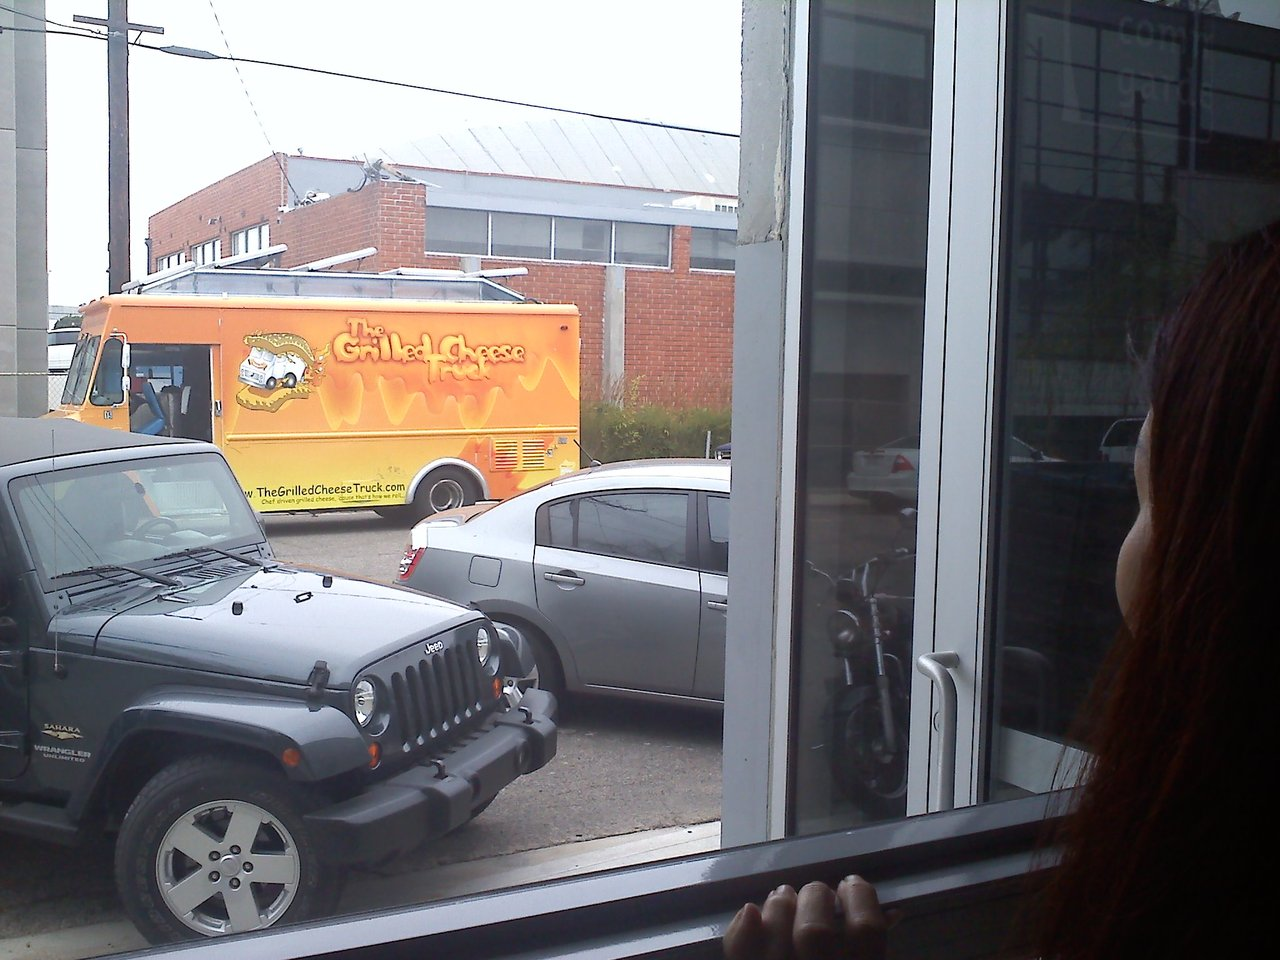 DAMN YOU GRILLED CHEESE. idigress: Although we have proof it stopped across the street, the grilled cheese truck took off before we could sample the wares. :(